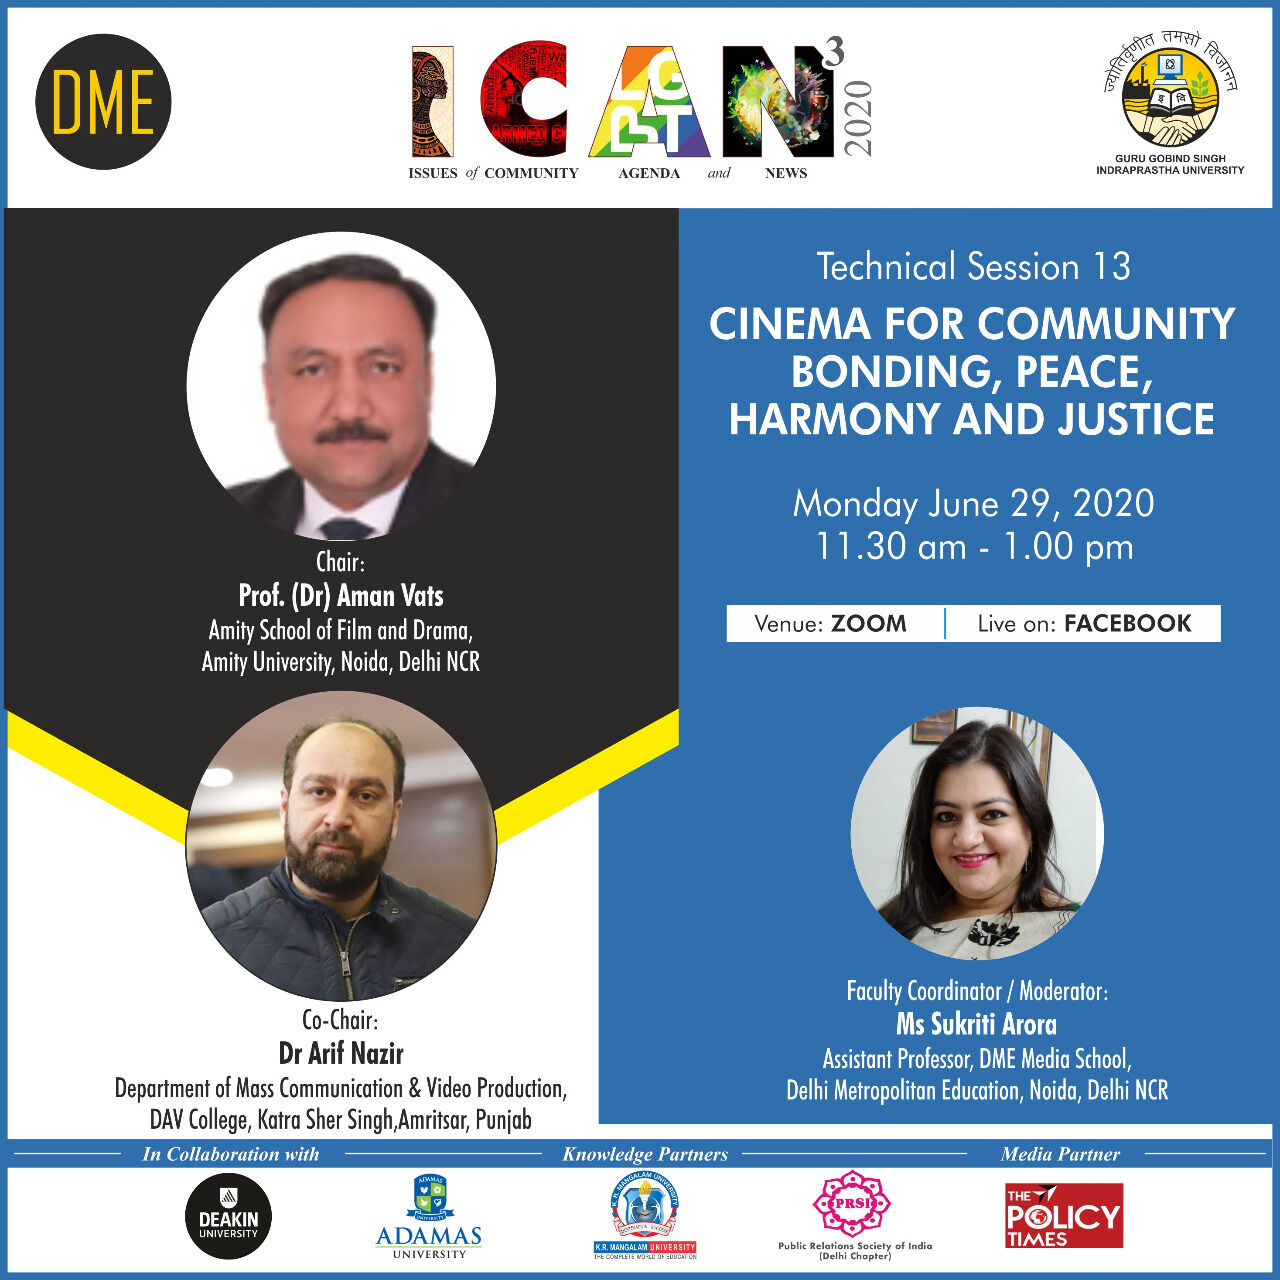 Cinema for community bonding, peace, harmony and justice